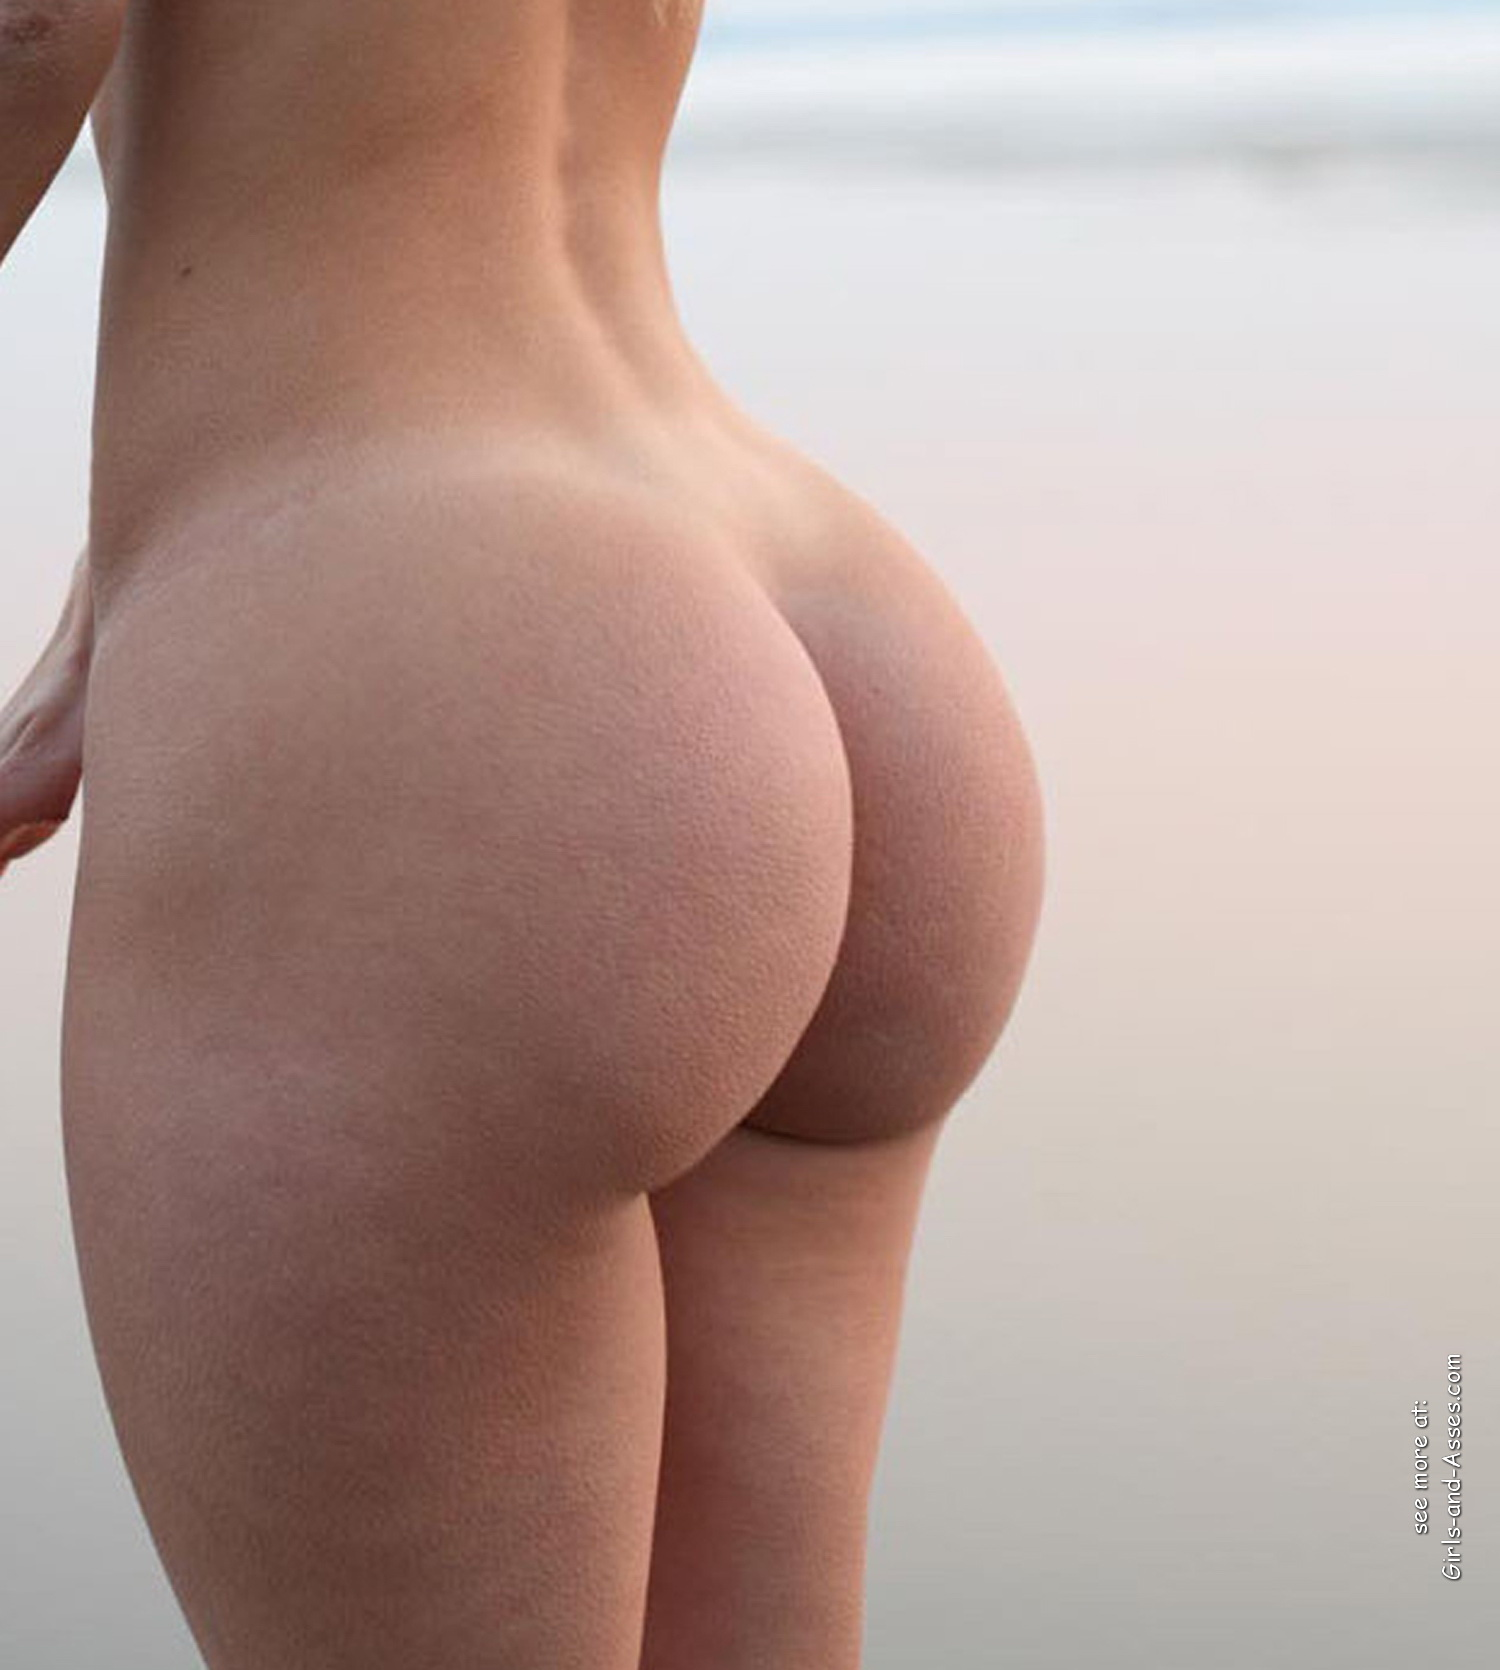 naked girl with cute butt on the river photo 11556